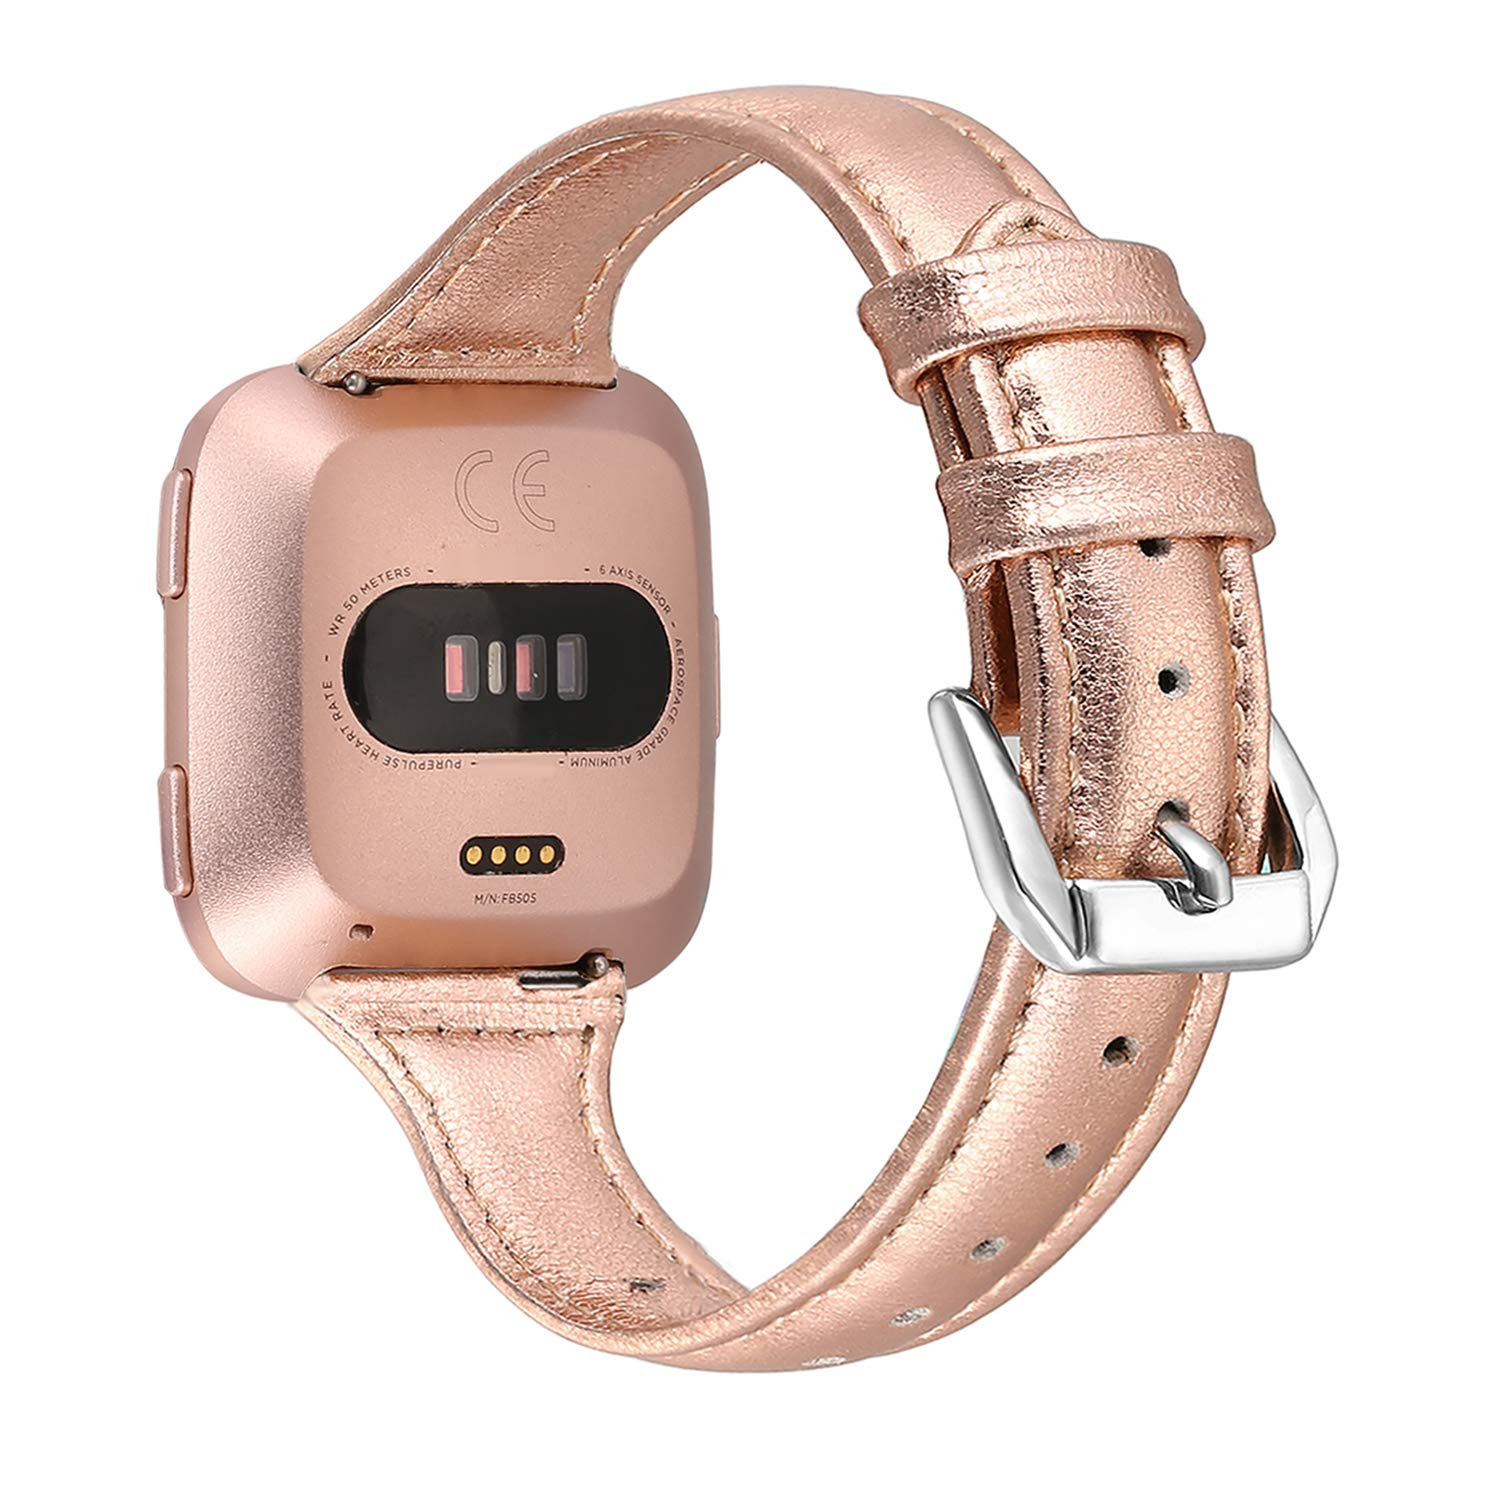 bayite Bands Compatible Fitbit Versa Slim Genuine Leather Band Replacement Accessories Strap Versa Women Men 5.3 7.8